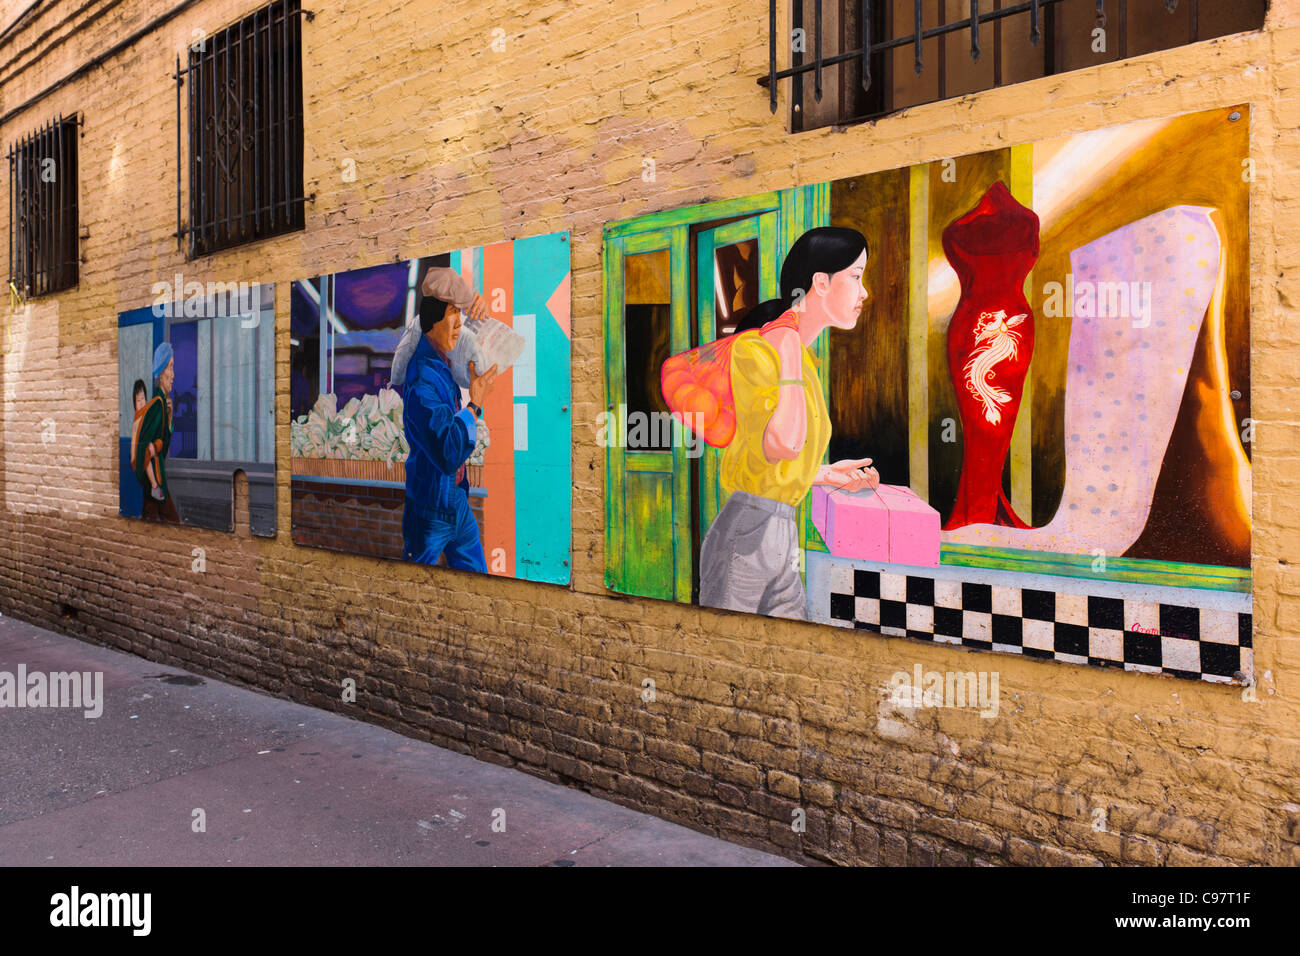 Chinatown Ross Alley Murals San Francisco - Stock Image